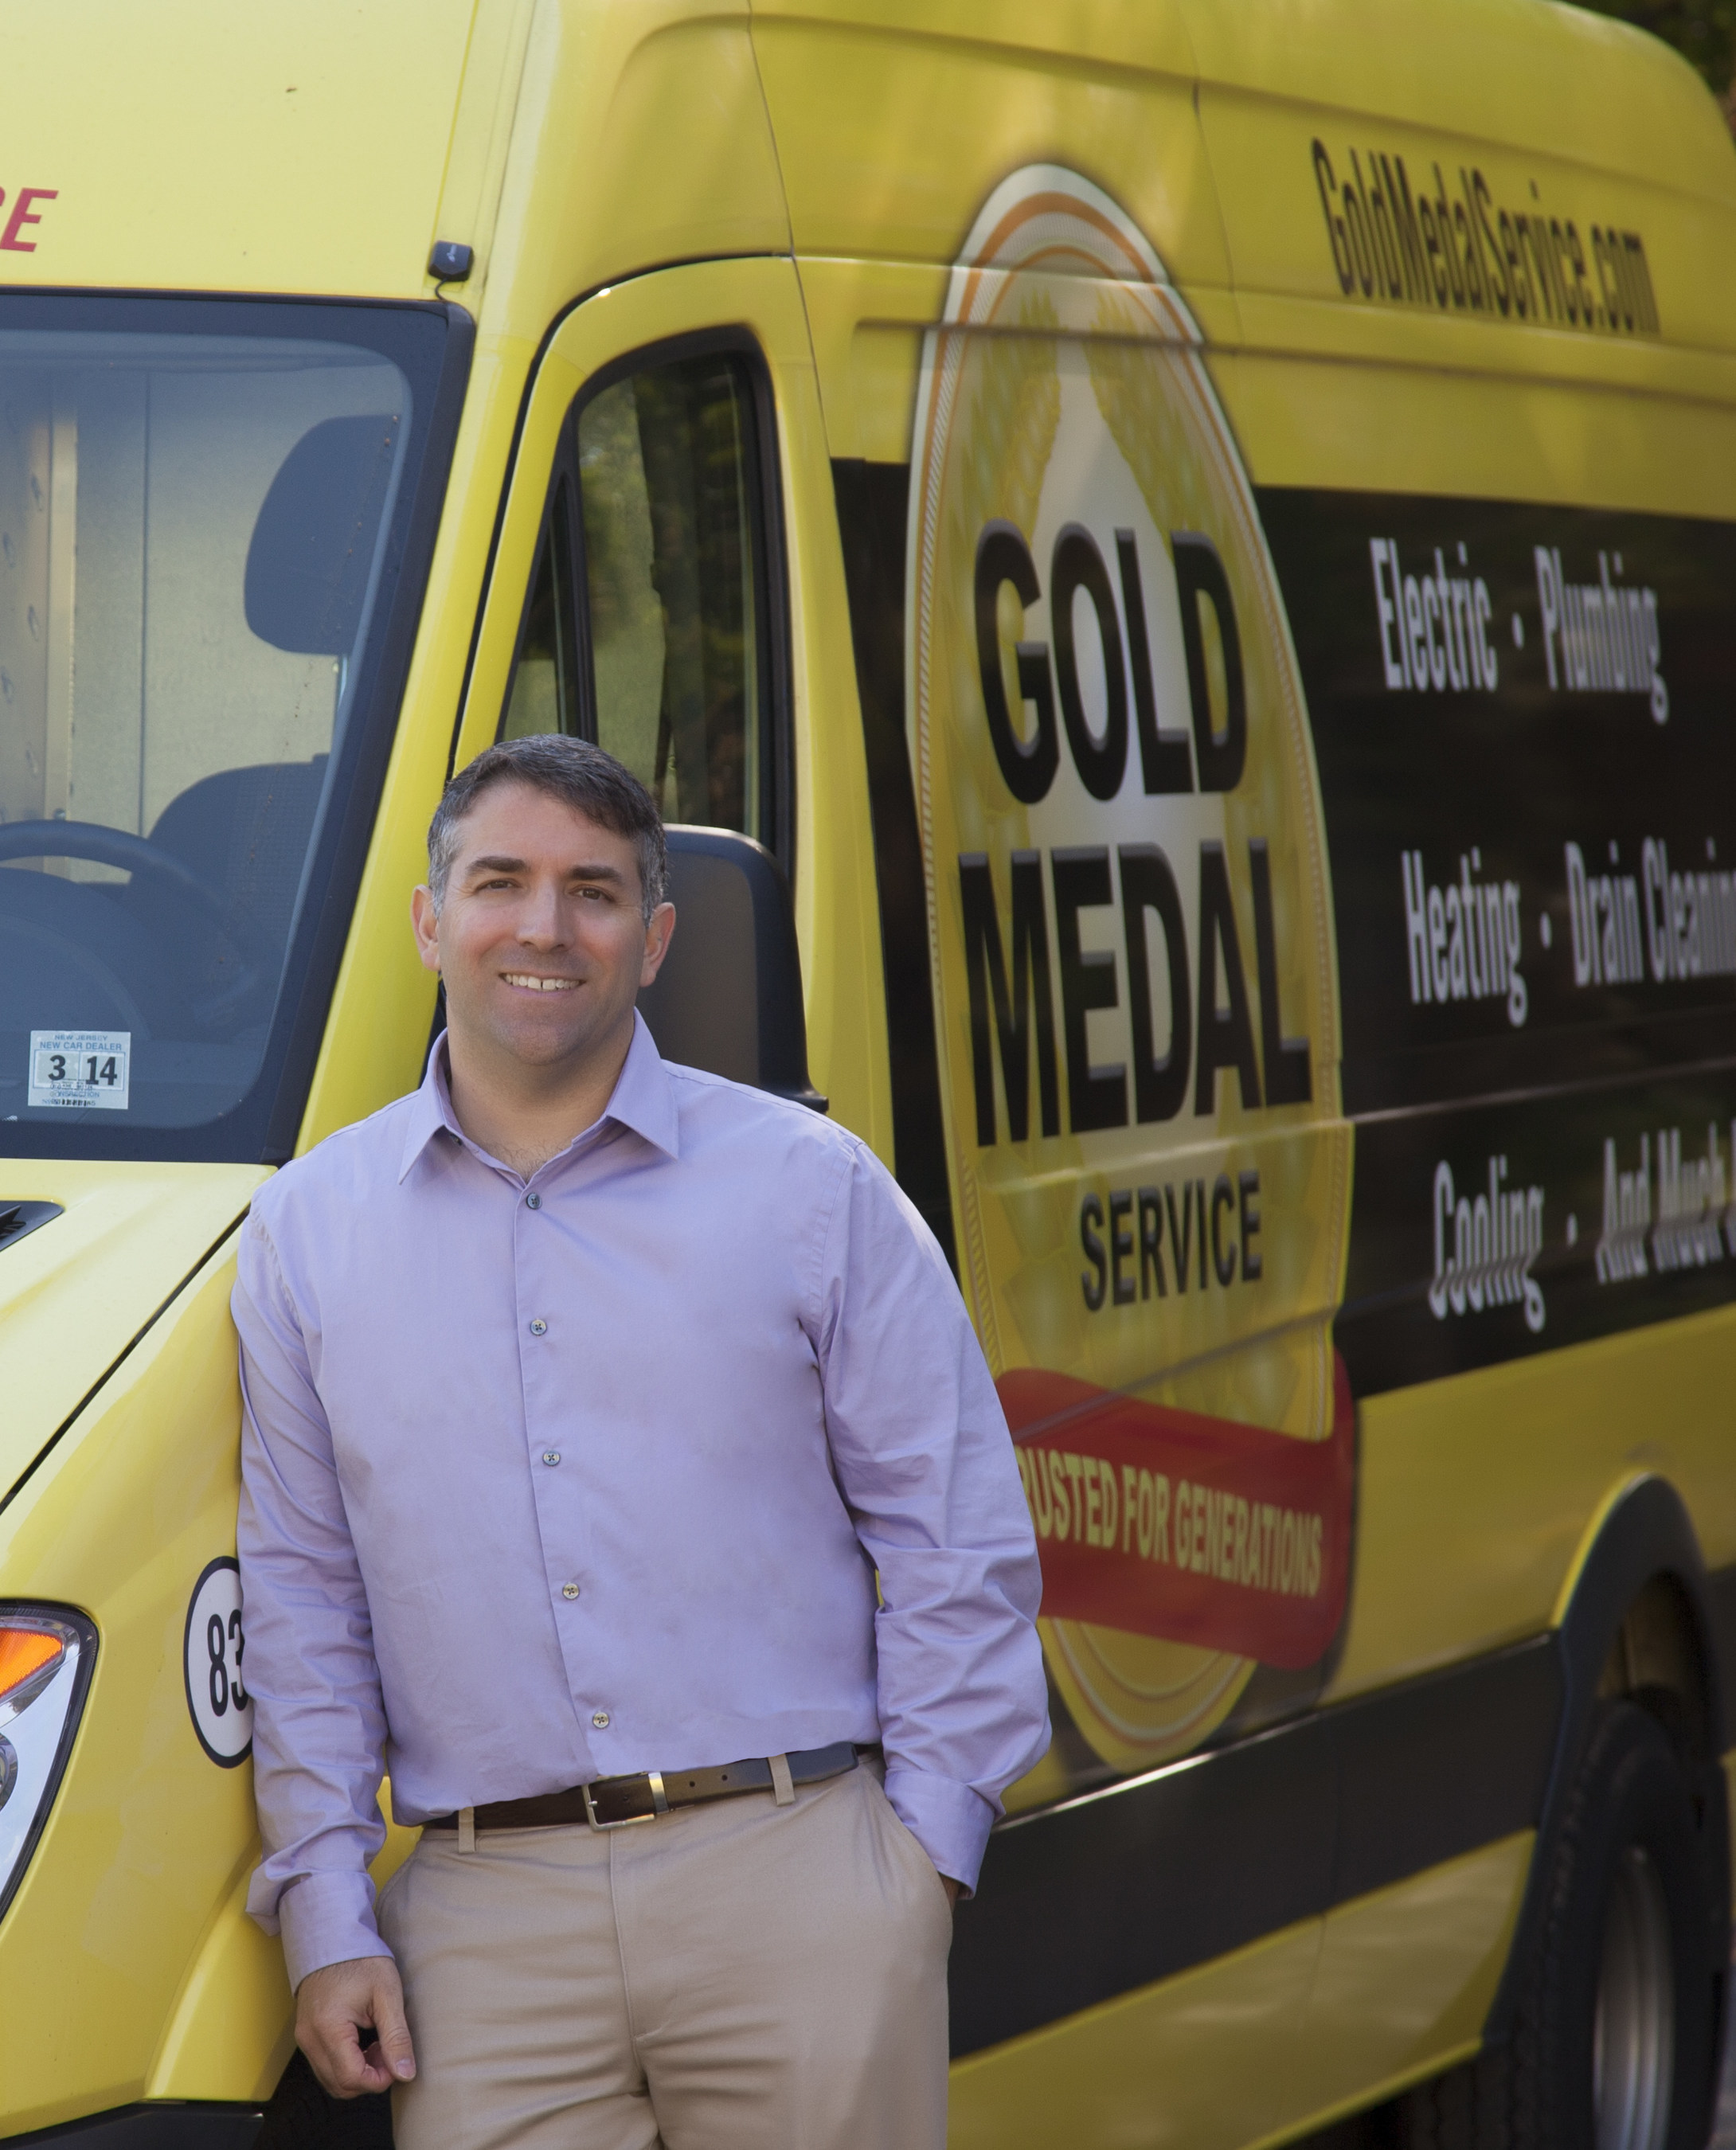 Gold Medal Service Adds Second Office to Accommodate Rapid Growth